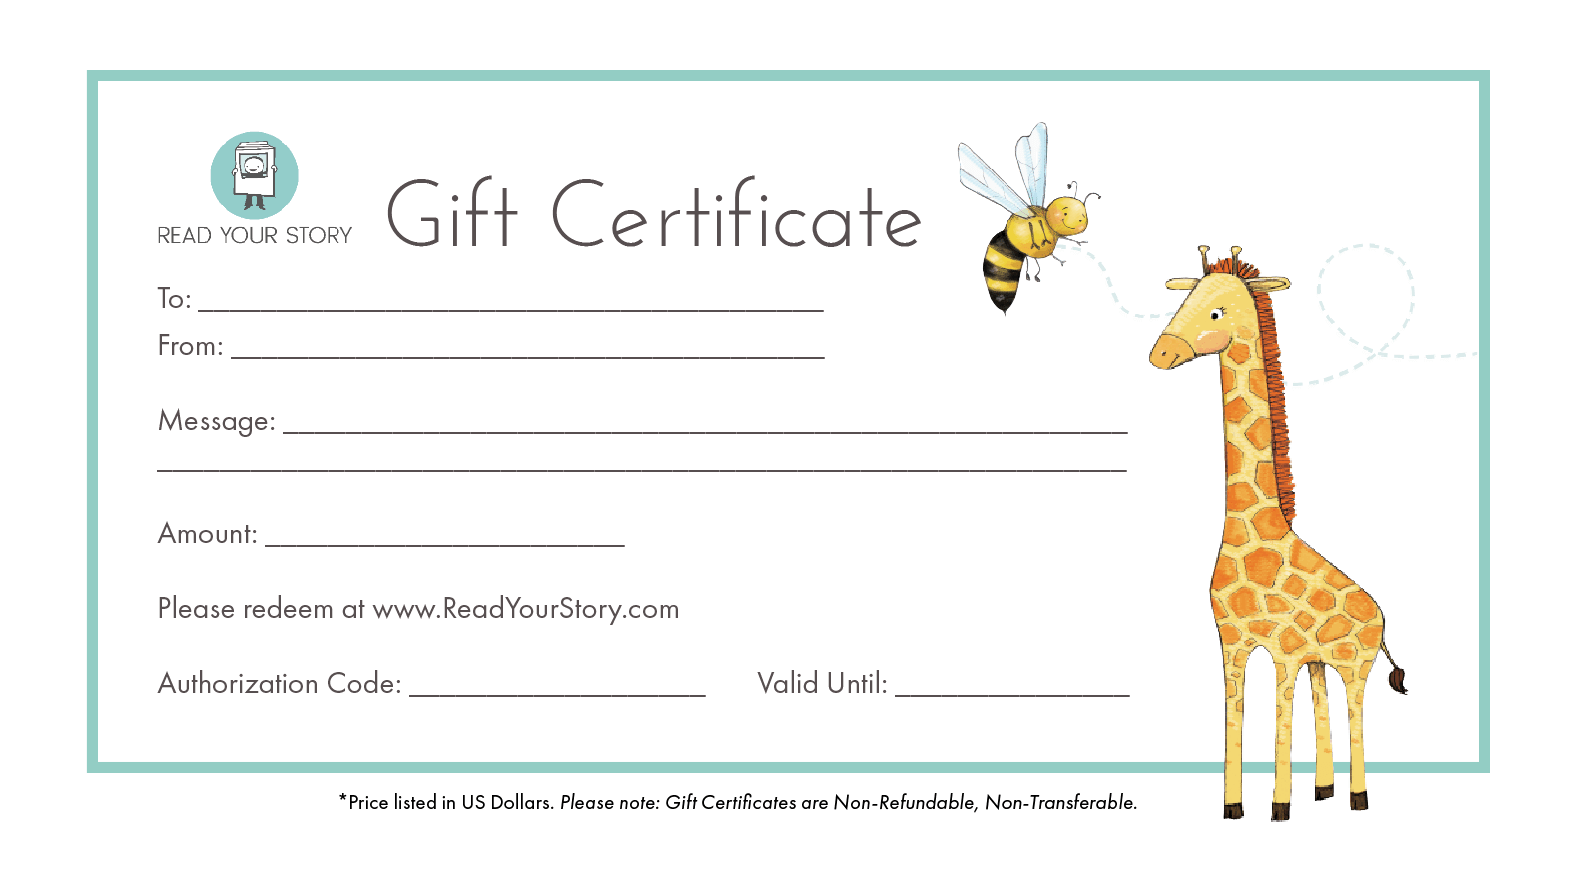 gift certificate for personalized books read your story